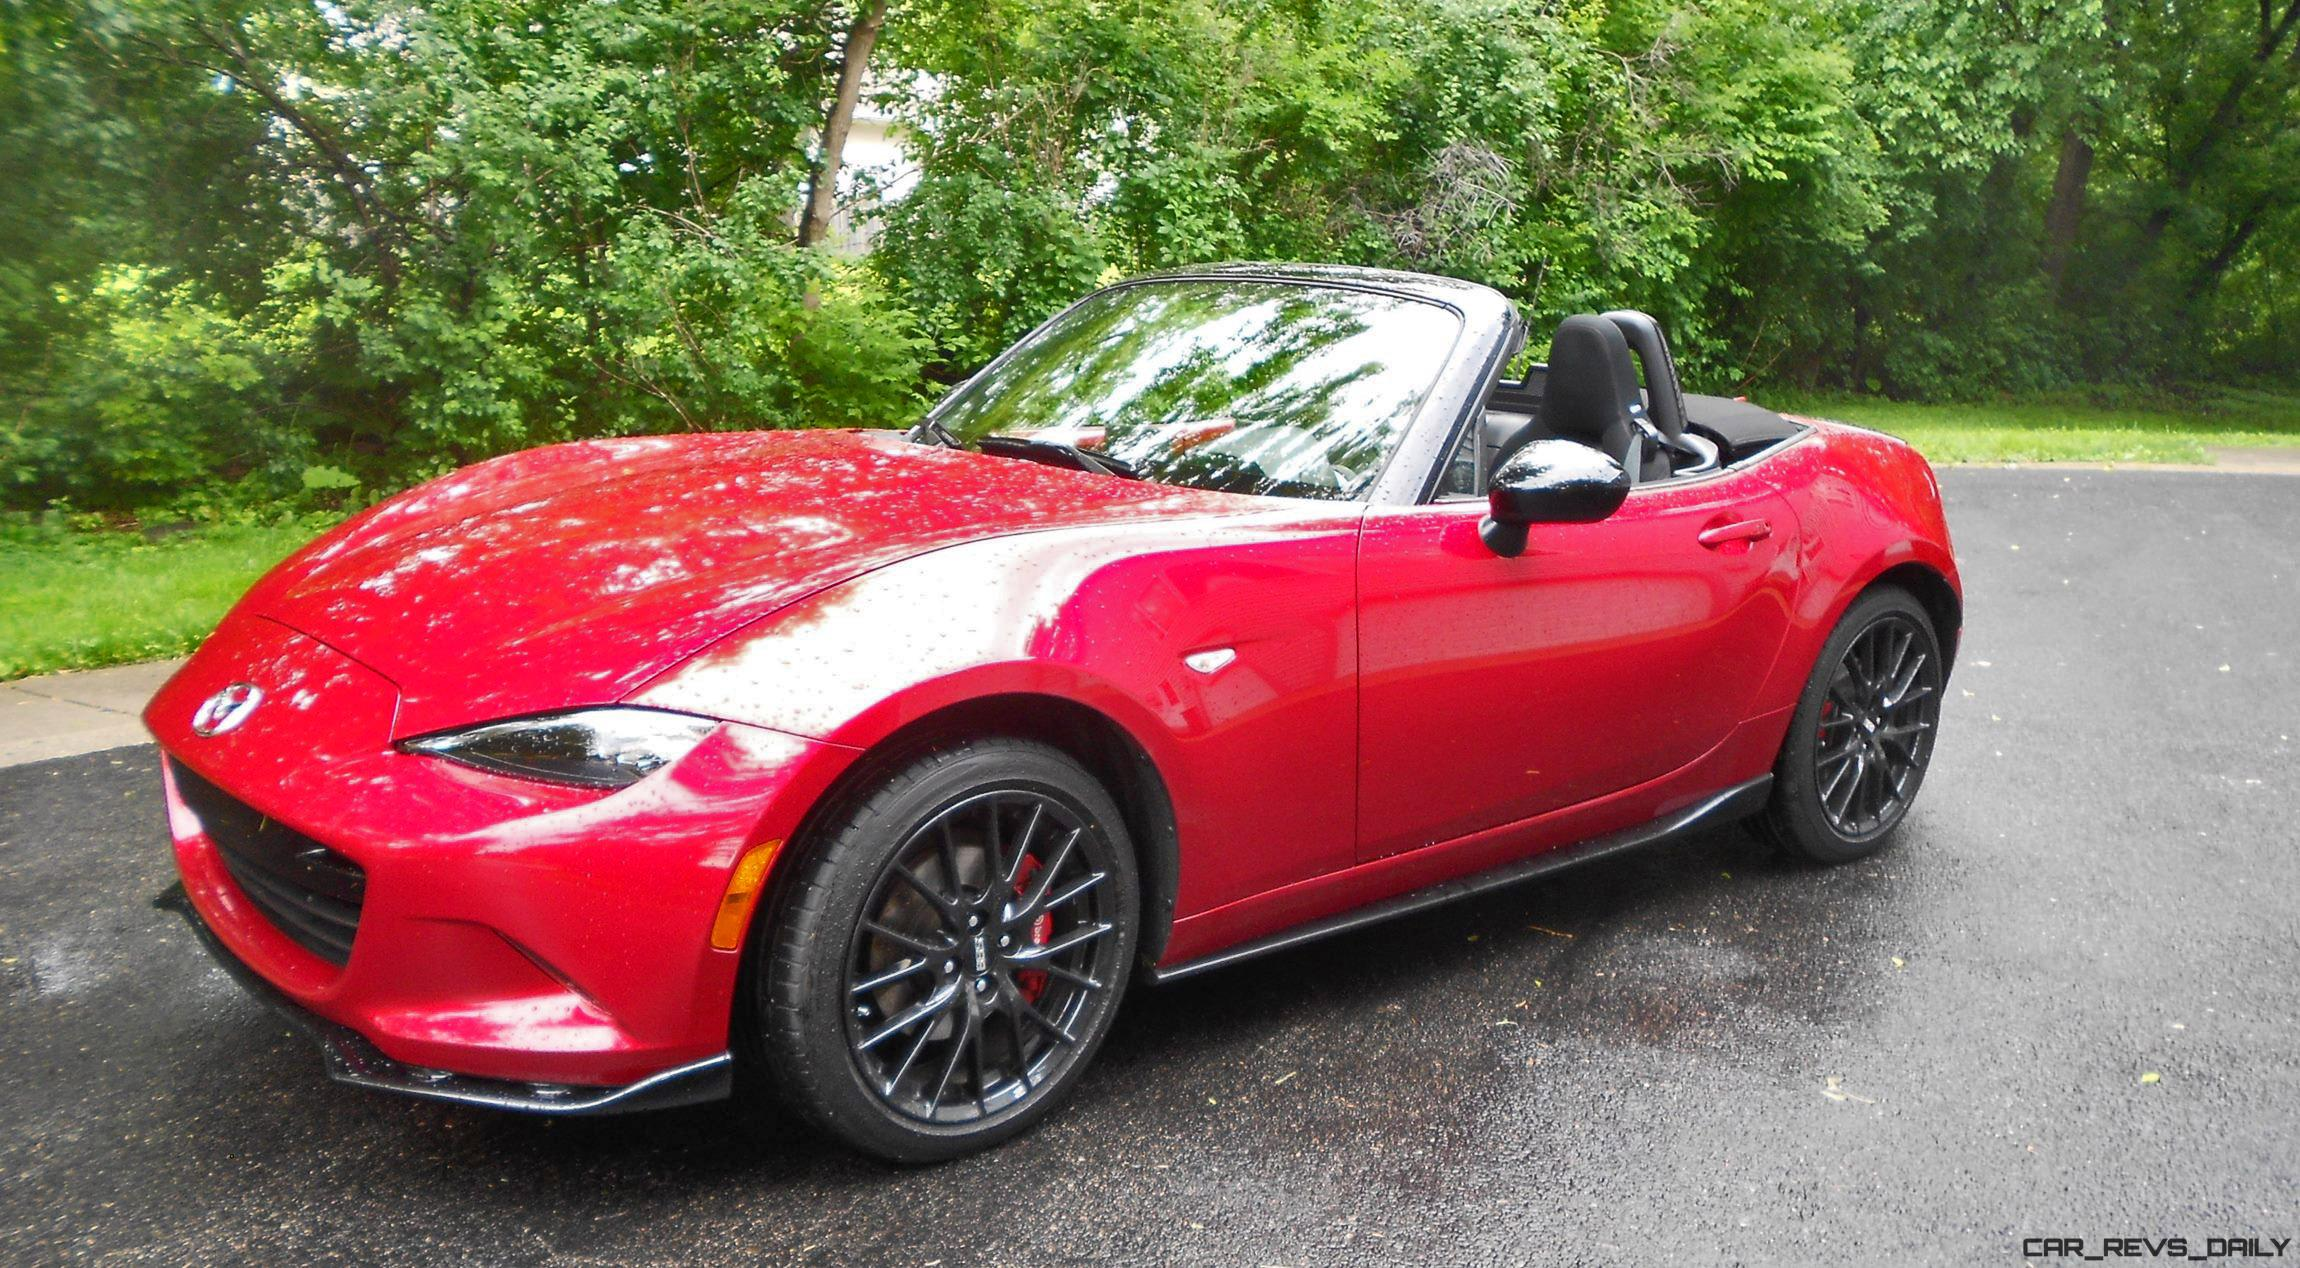 http://www.car-revs-daily.com/wp-content/uploads/2016/06/2016-Mazda-MX-5-Club-6MT-9.jpg